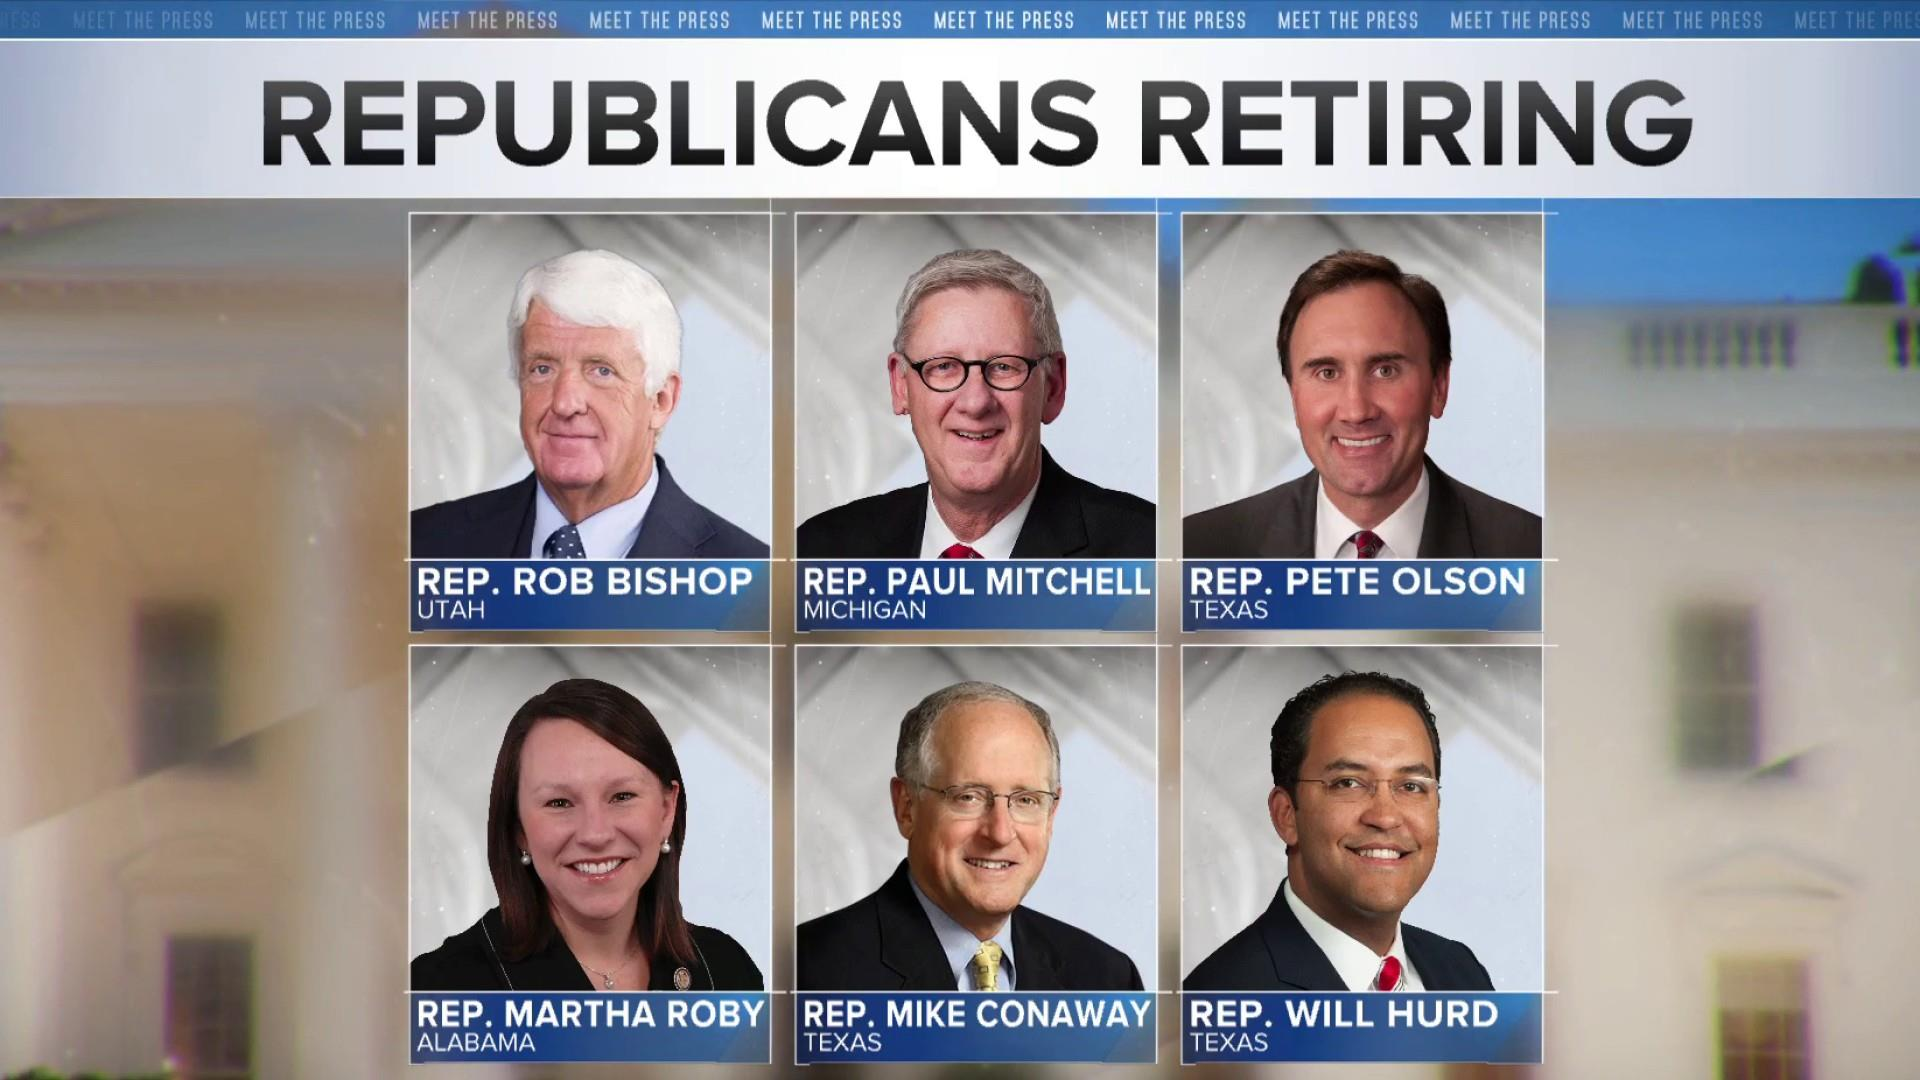 Rep. Will Hurd's retirement announcement becomes si​xth GOP exit in two weeks